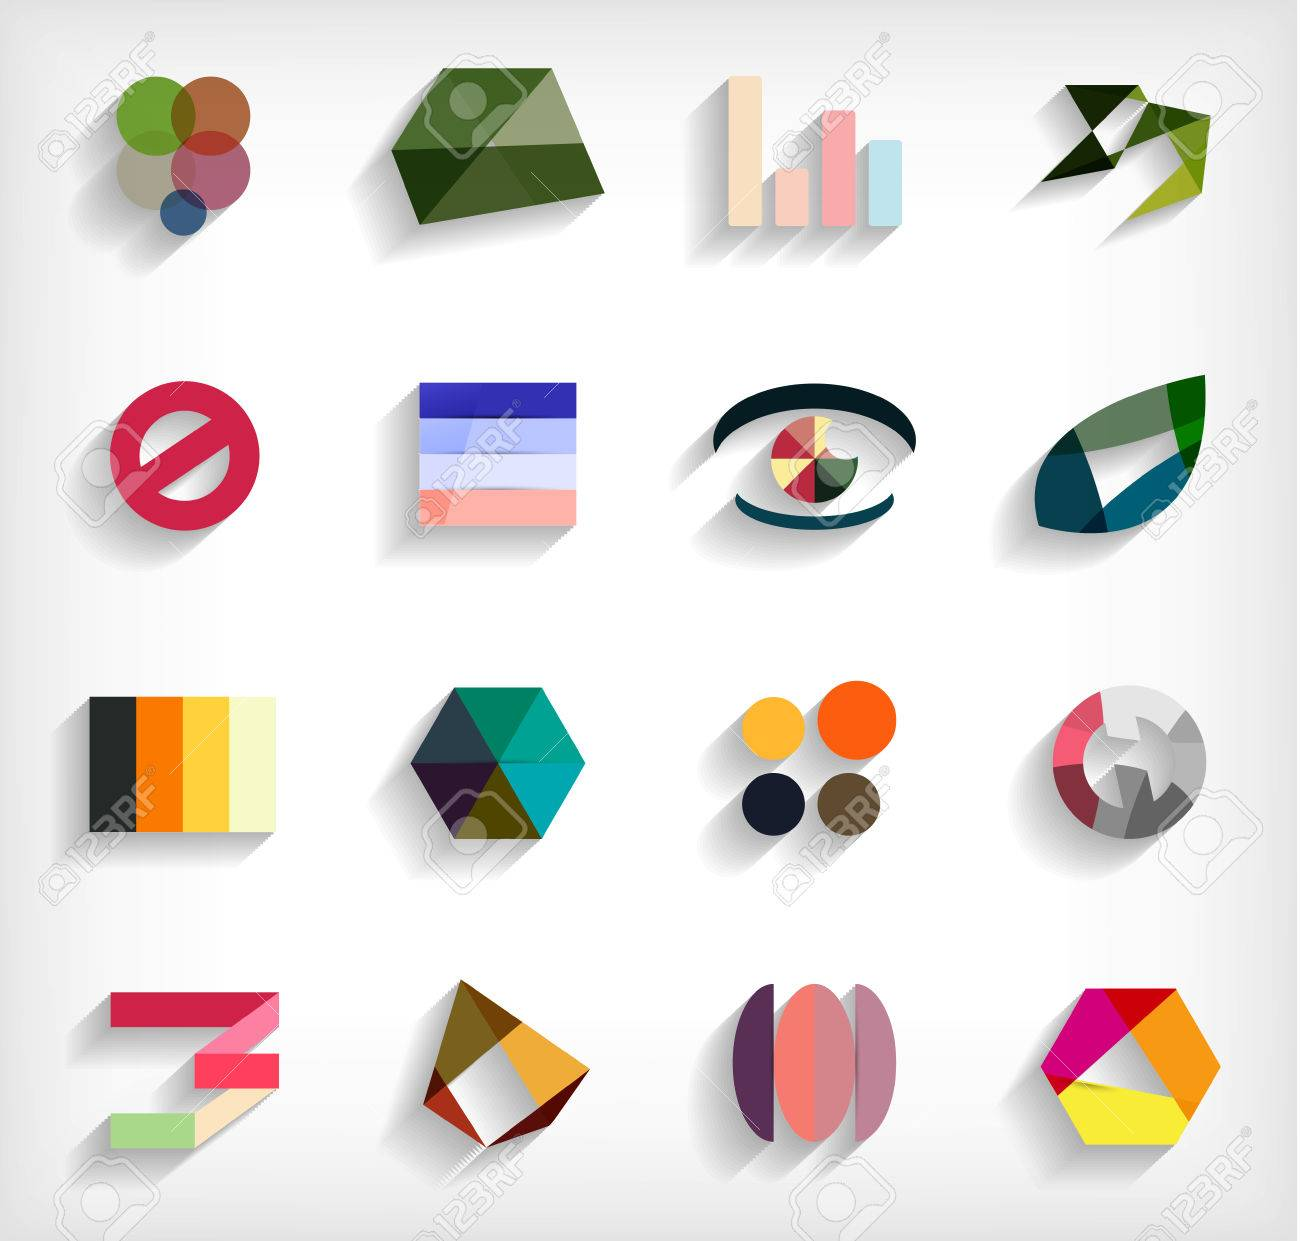 3d flat geometric abstract business icon set Stock Vector - 23462737